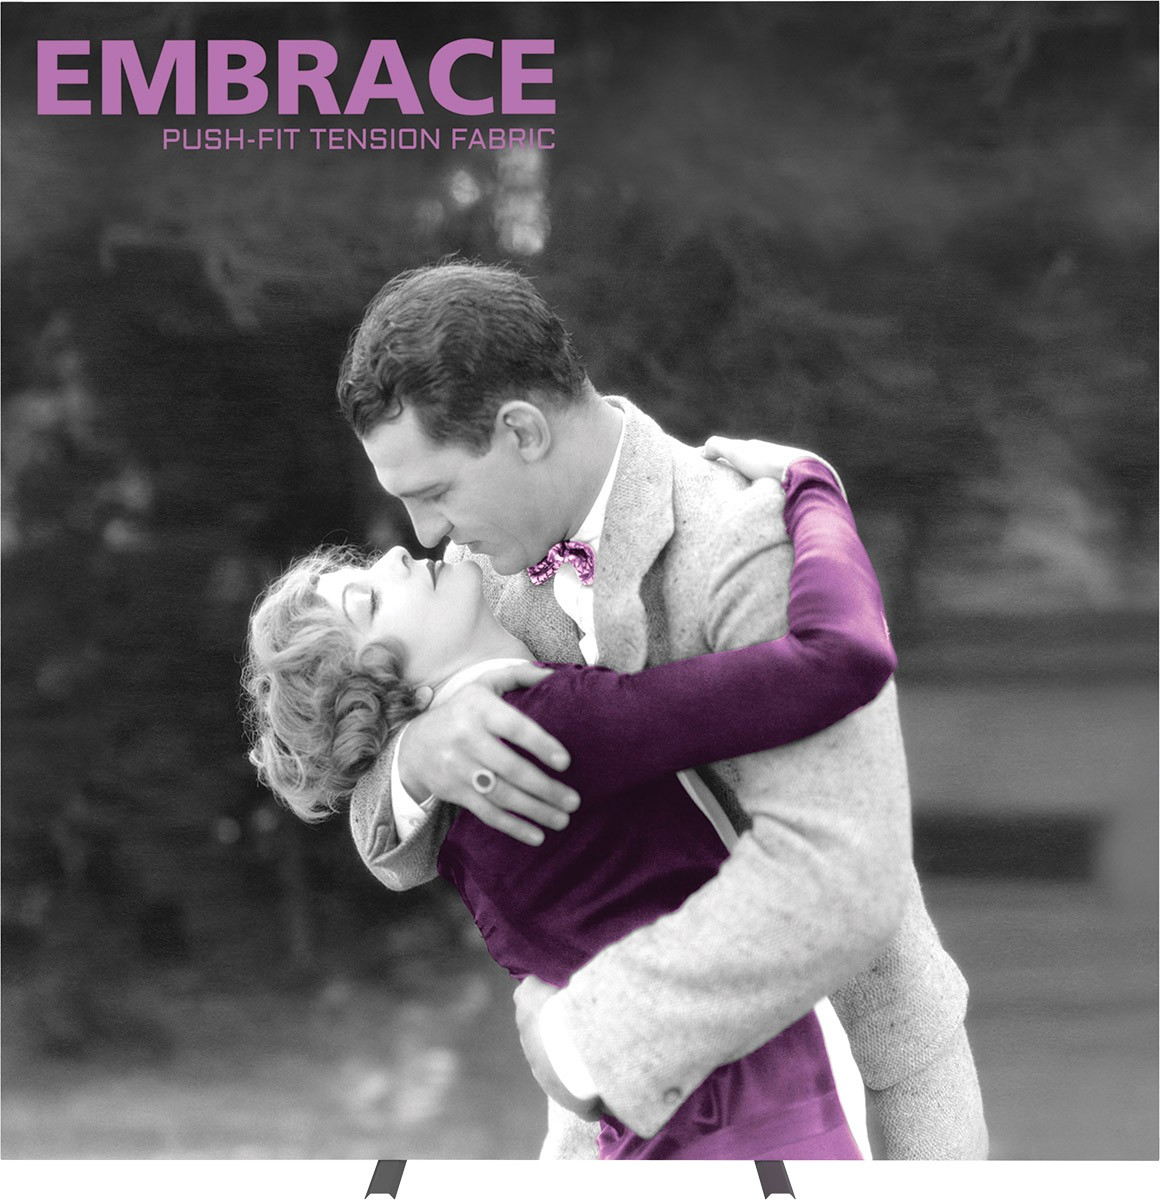 Embrace 8' Tension Fabric Display